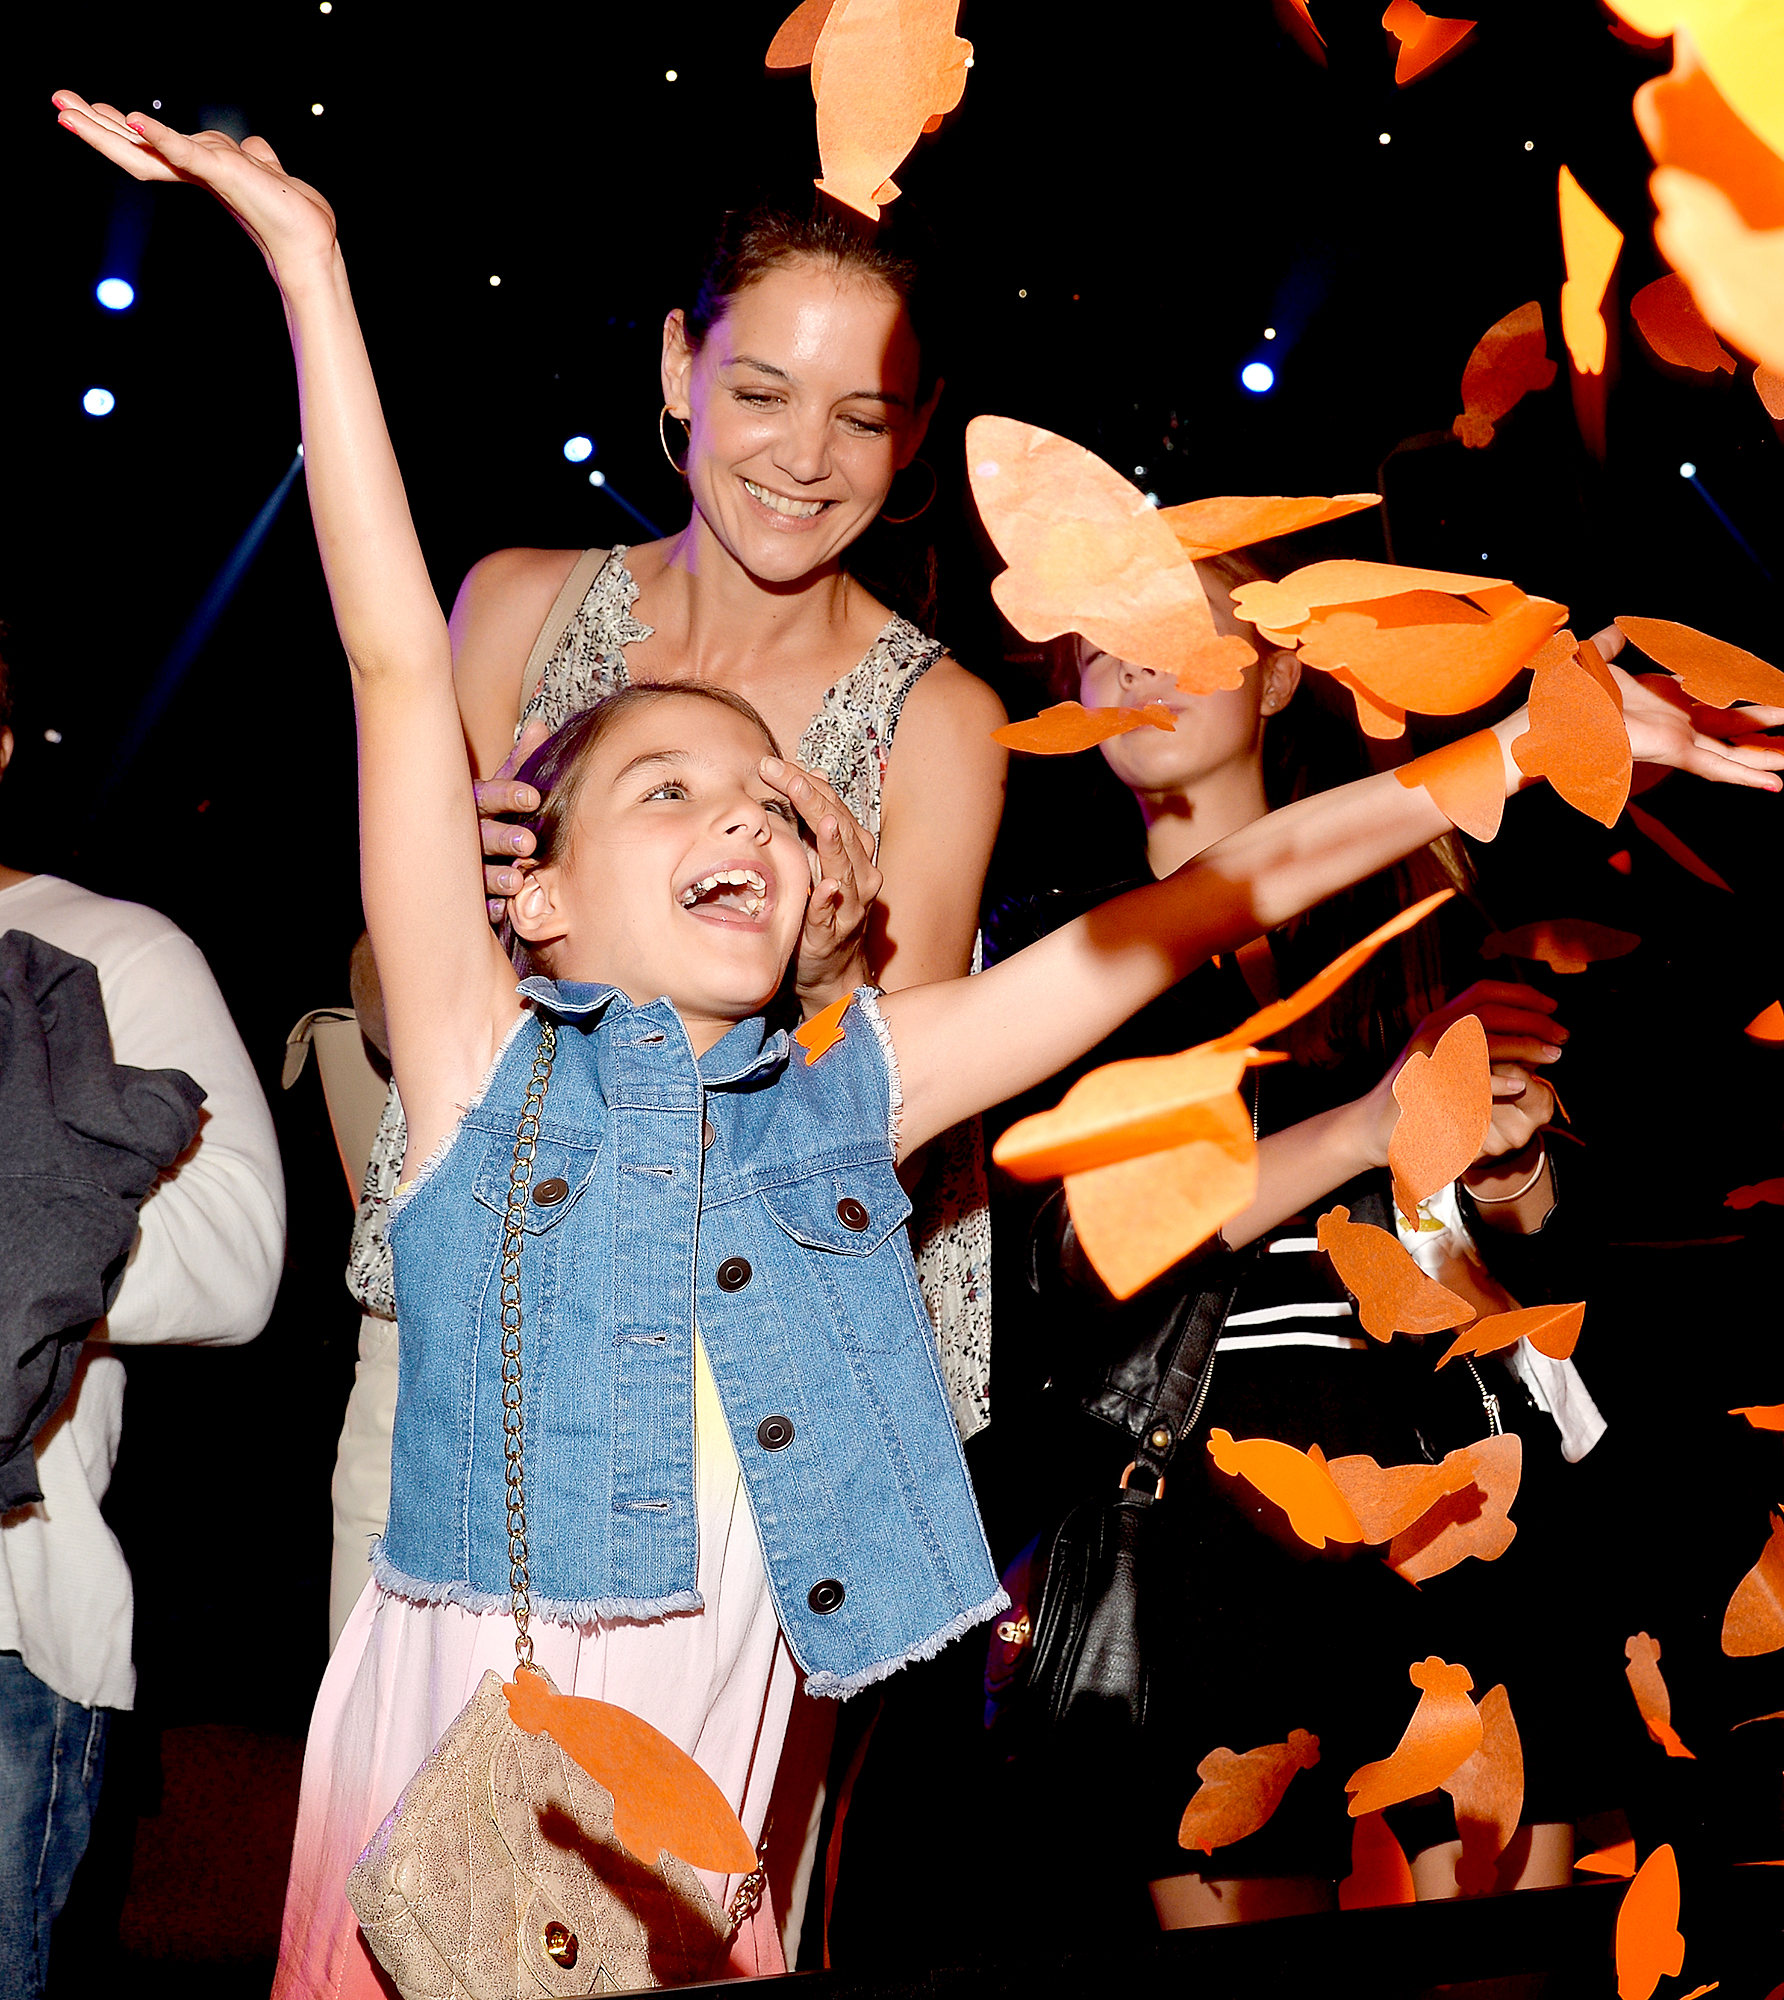 suri-cruise-birthday - INGLEWOOD, CA – MARCH 28: Suri Cruise (L) and actress Katie Holmes in the audience during Nickelodeon's 28th Annual Kids' Choice Awards held at The Forum on March 28, 2015 in Inglewood, California. (Photo by Lester Cohen/KCA2015/WireImage)